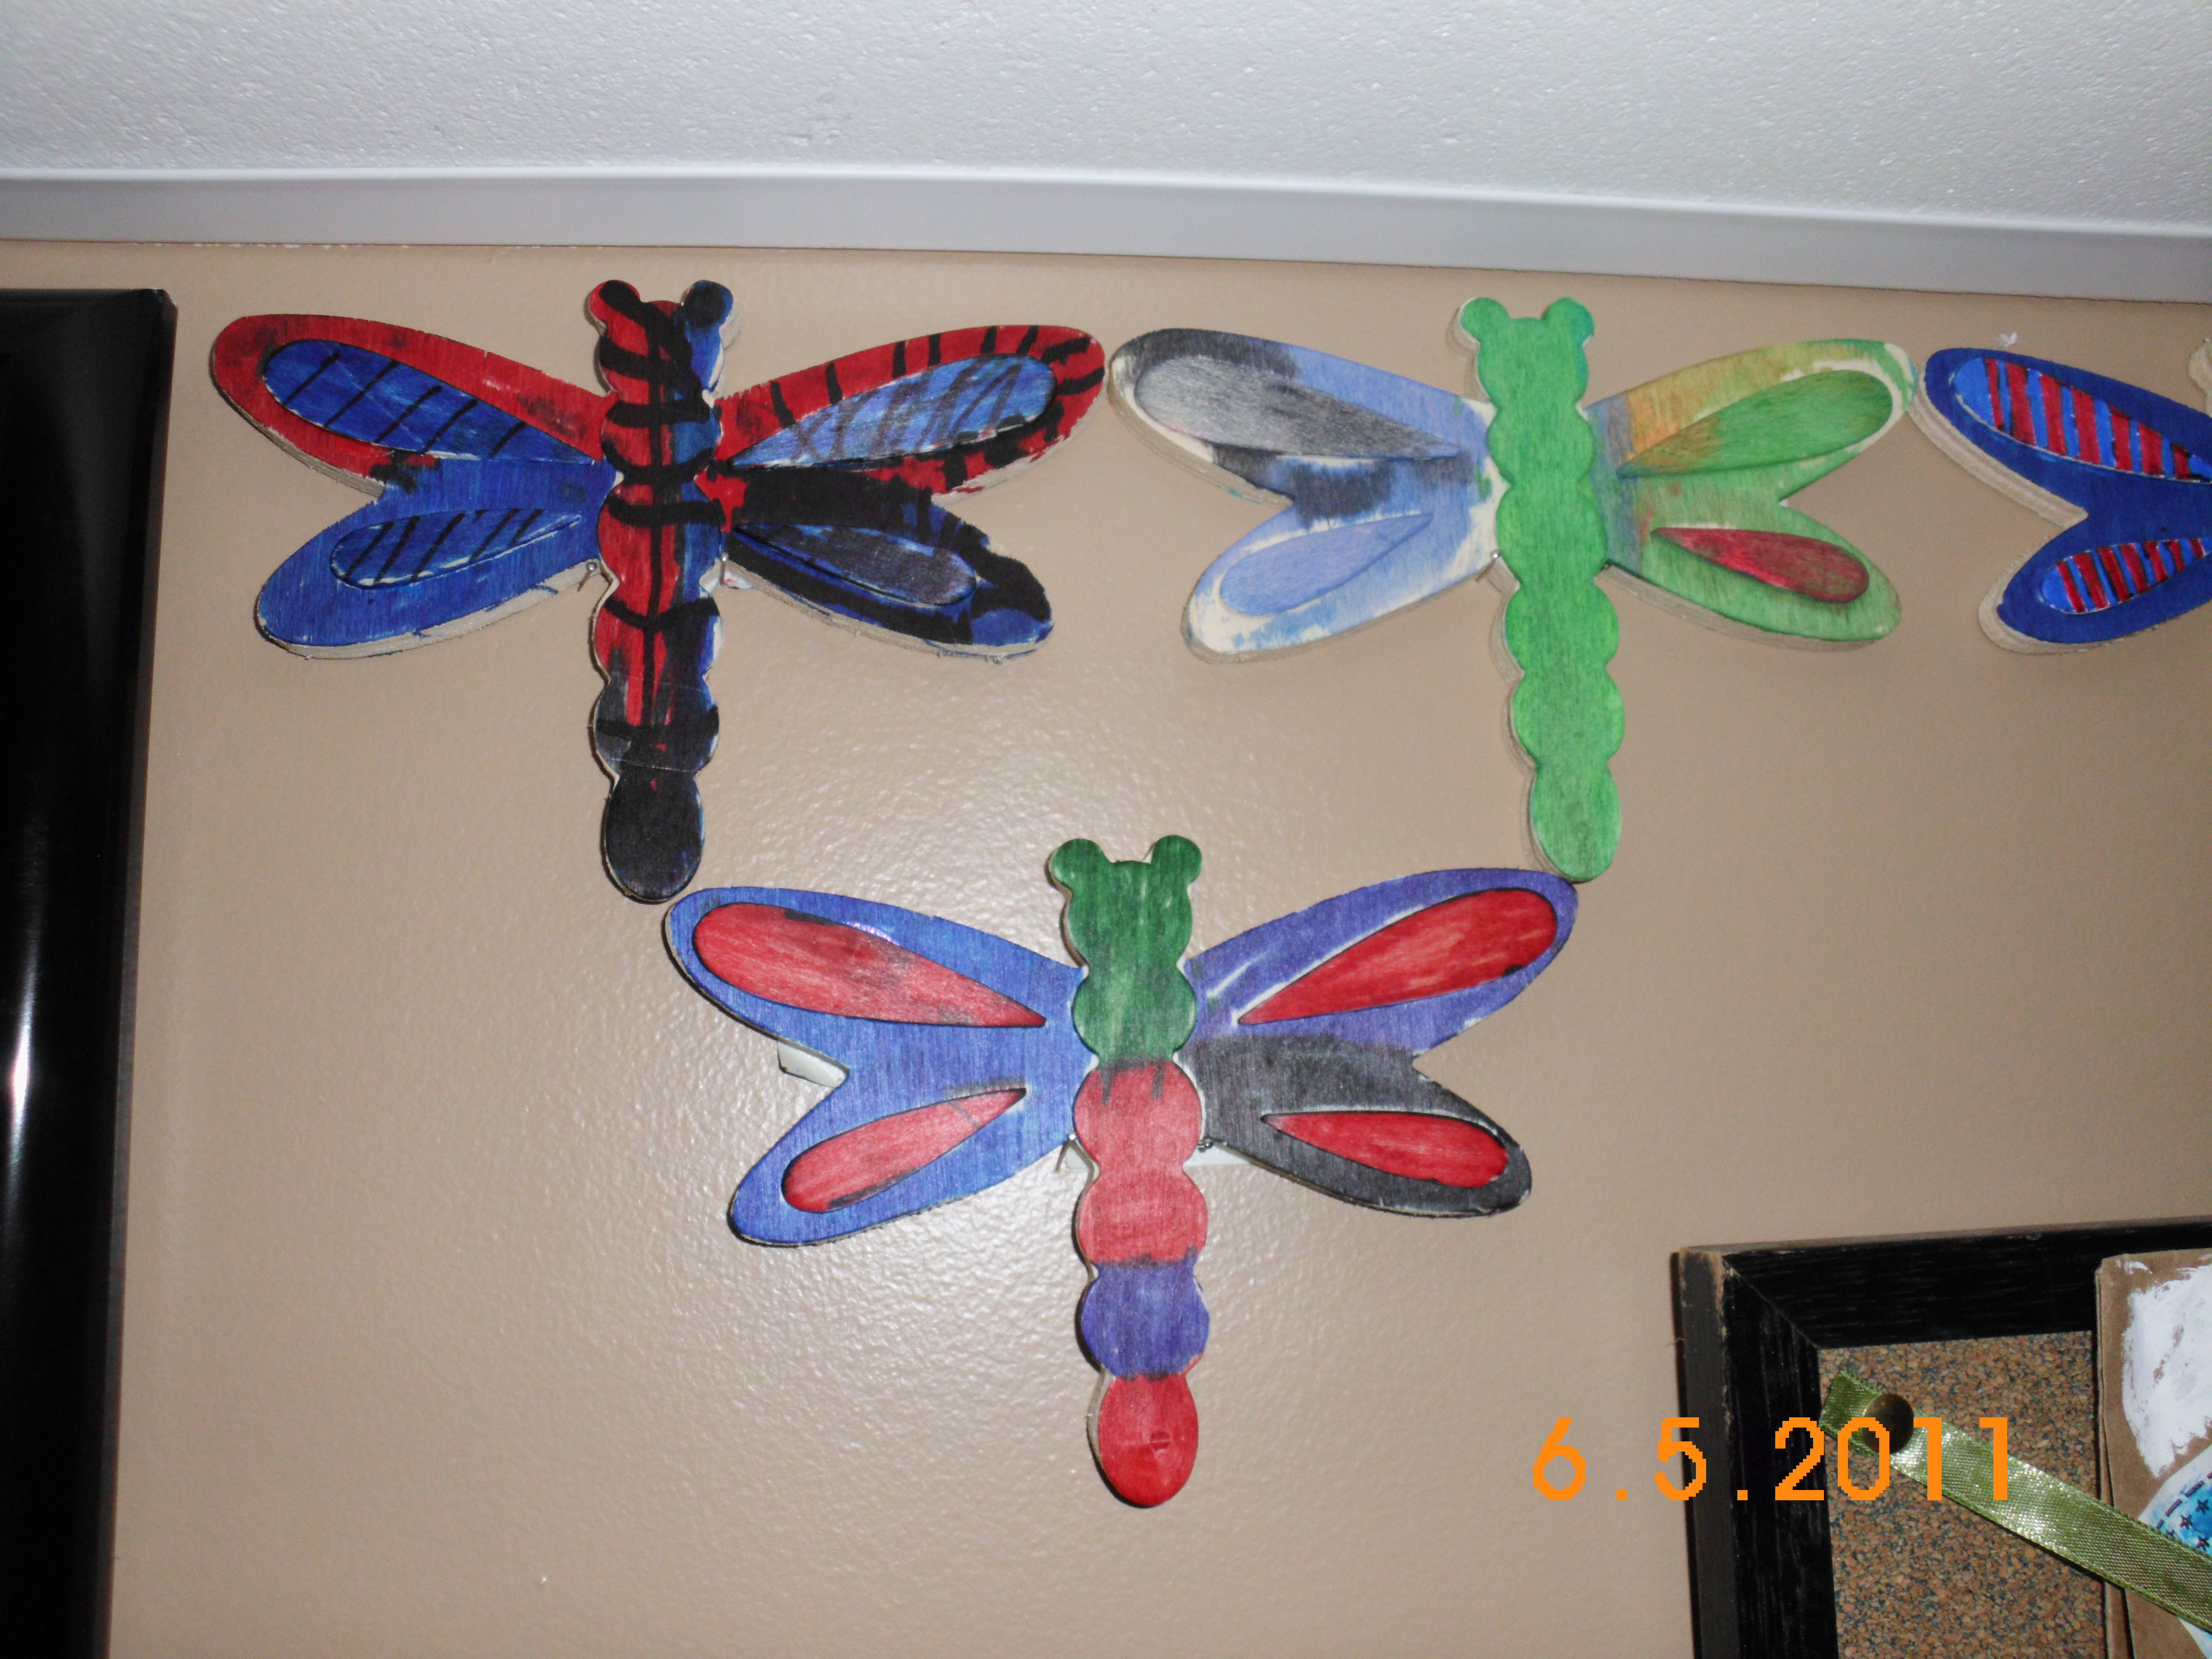 Dragonfly arts and crafts - Advertisements